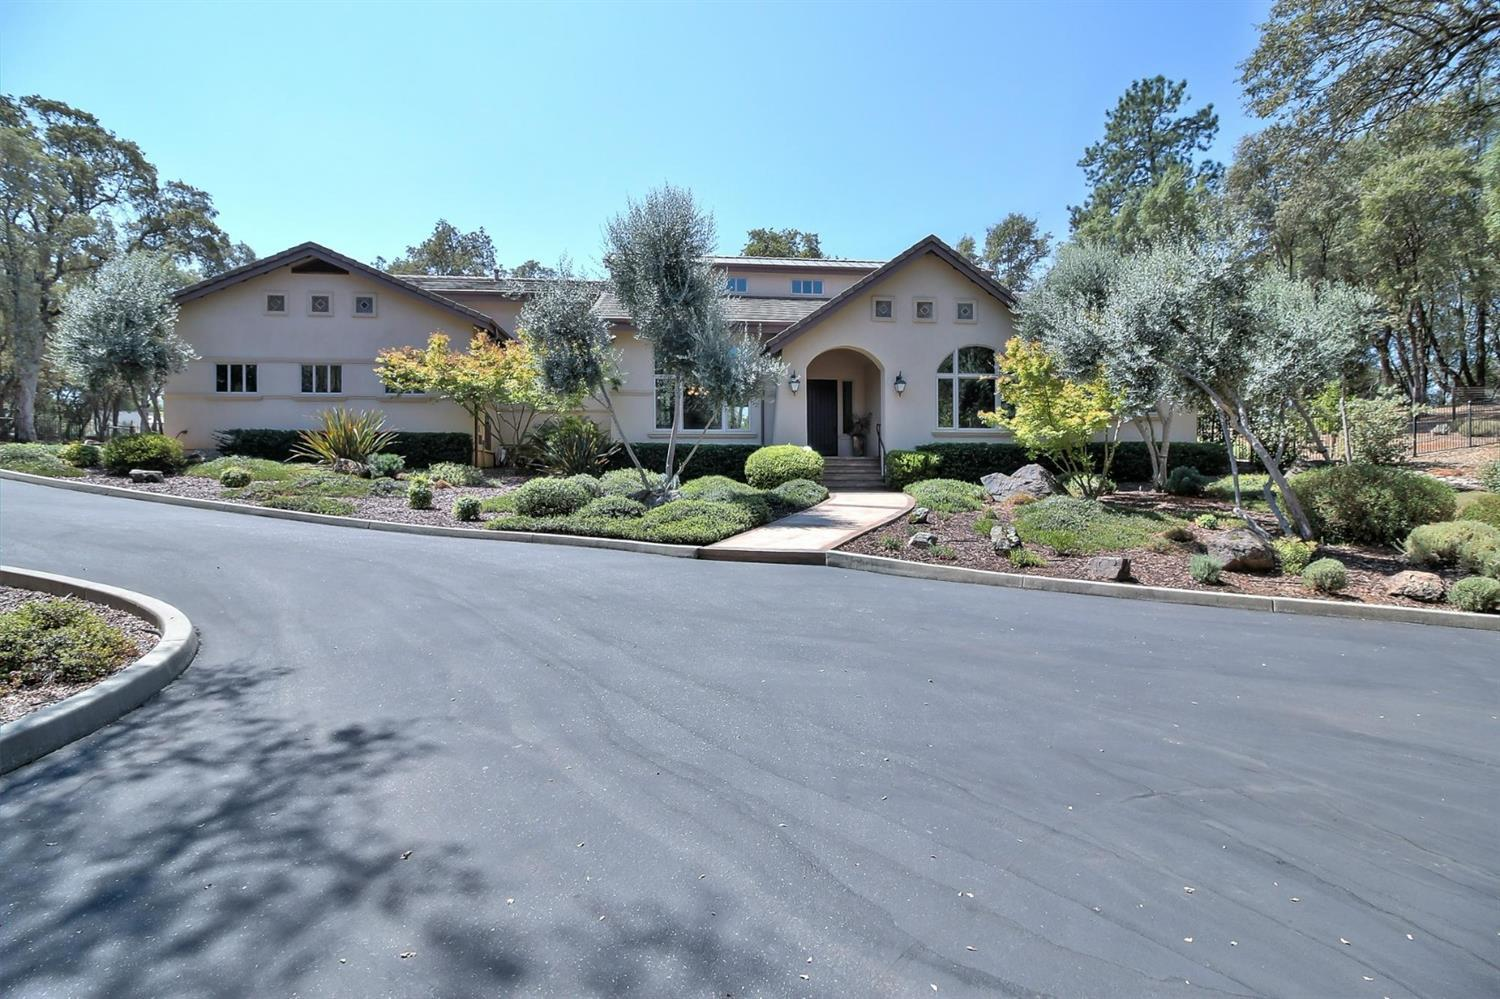 Property With A Mountain View In Auburn Ca